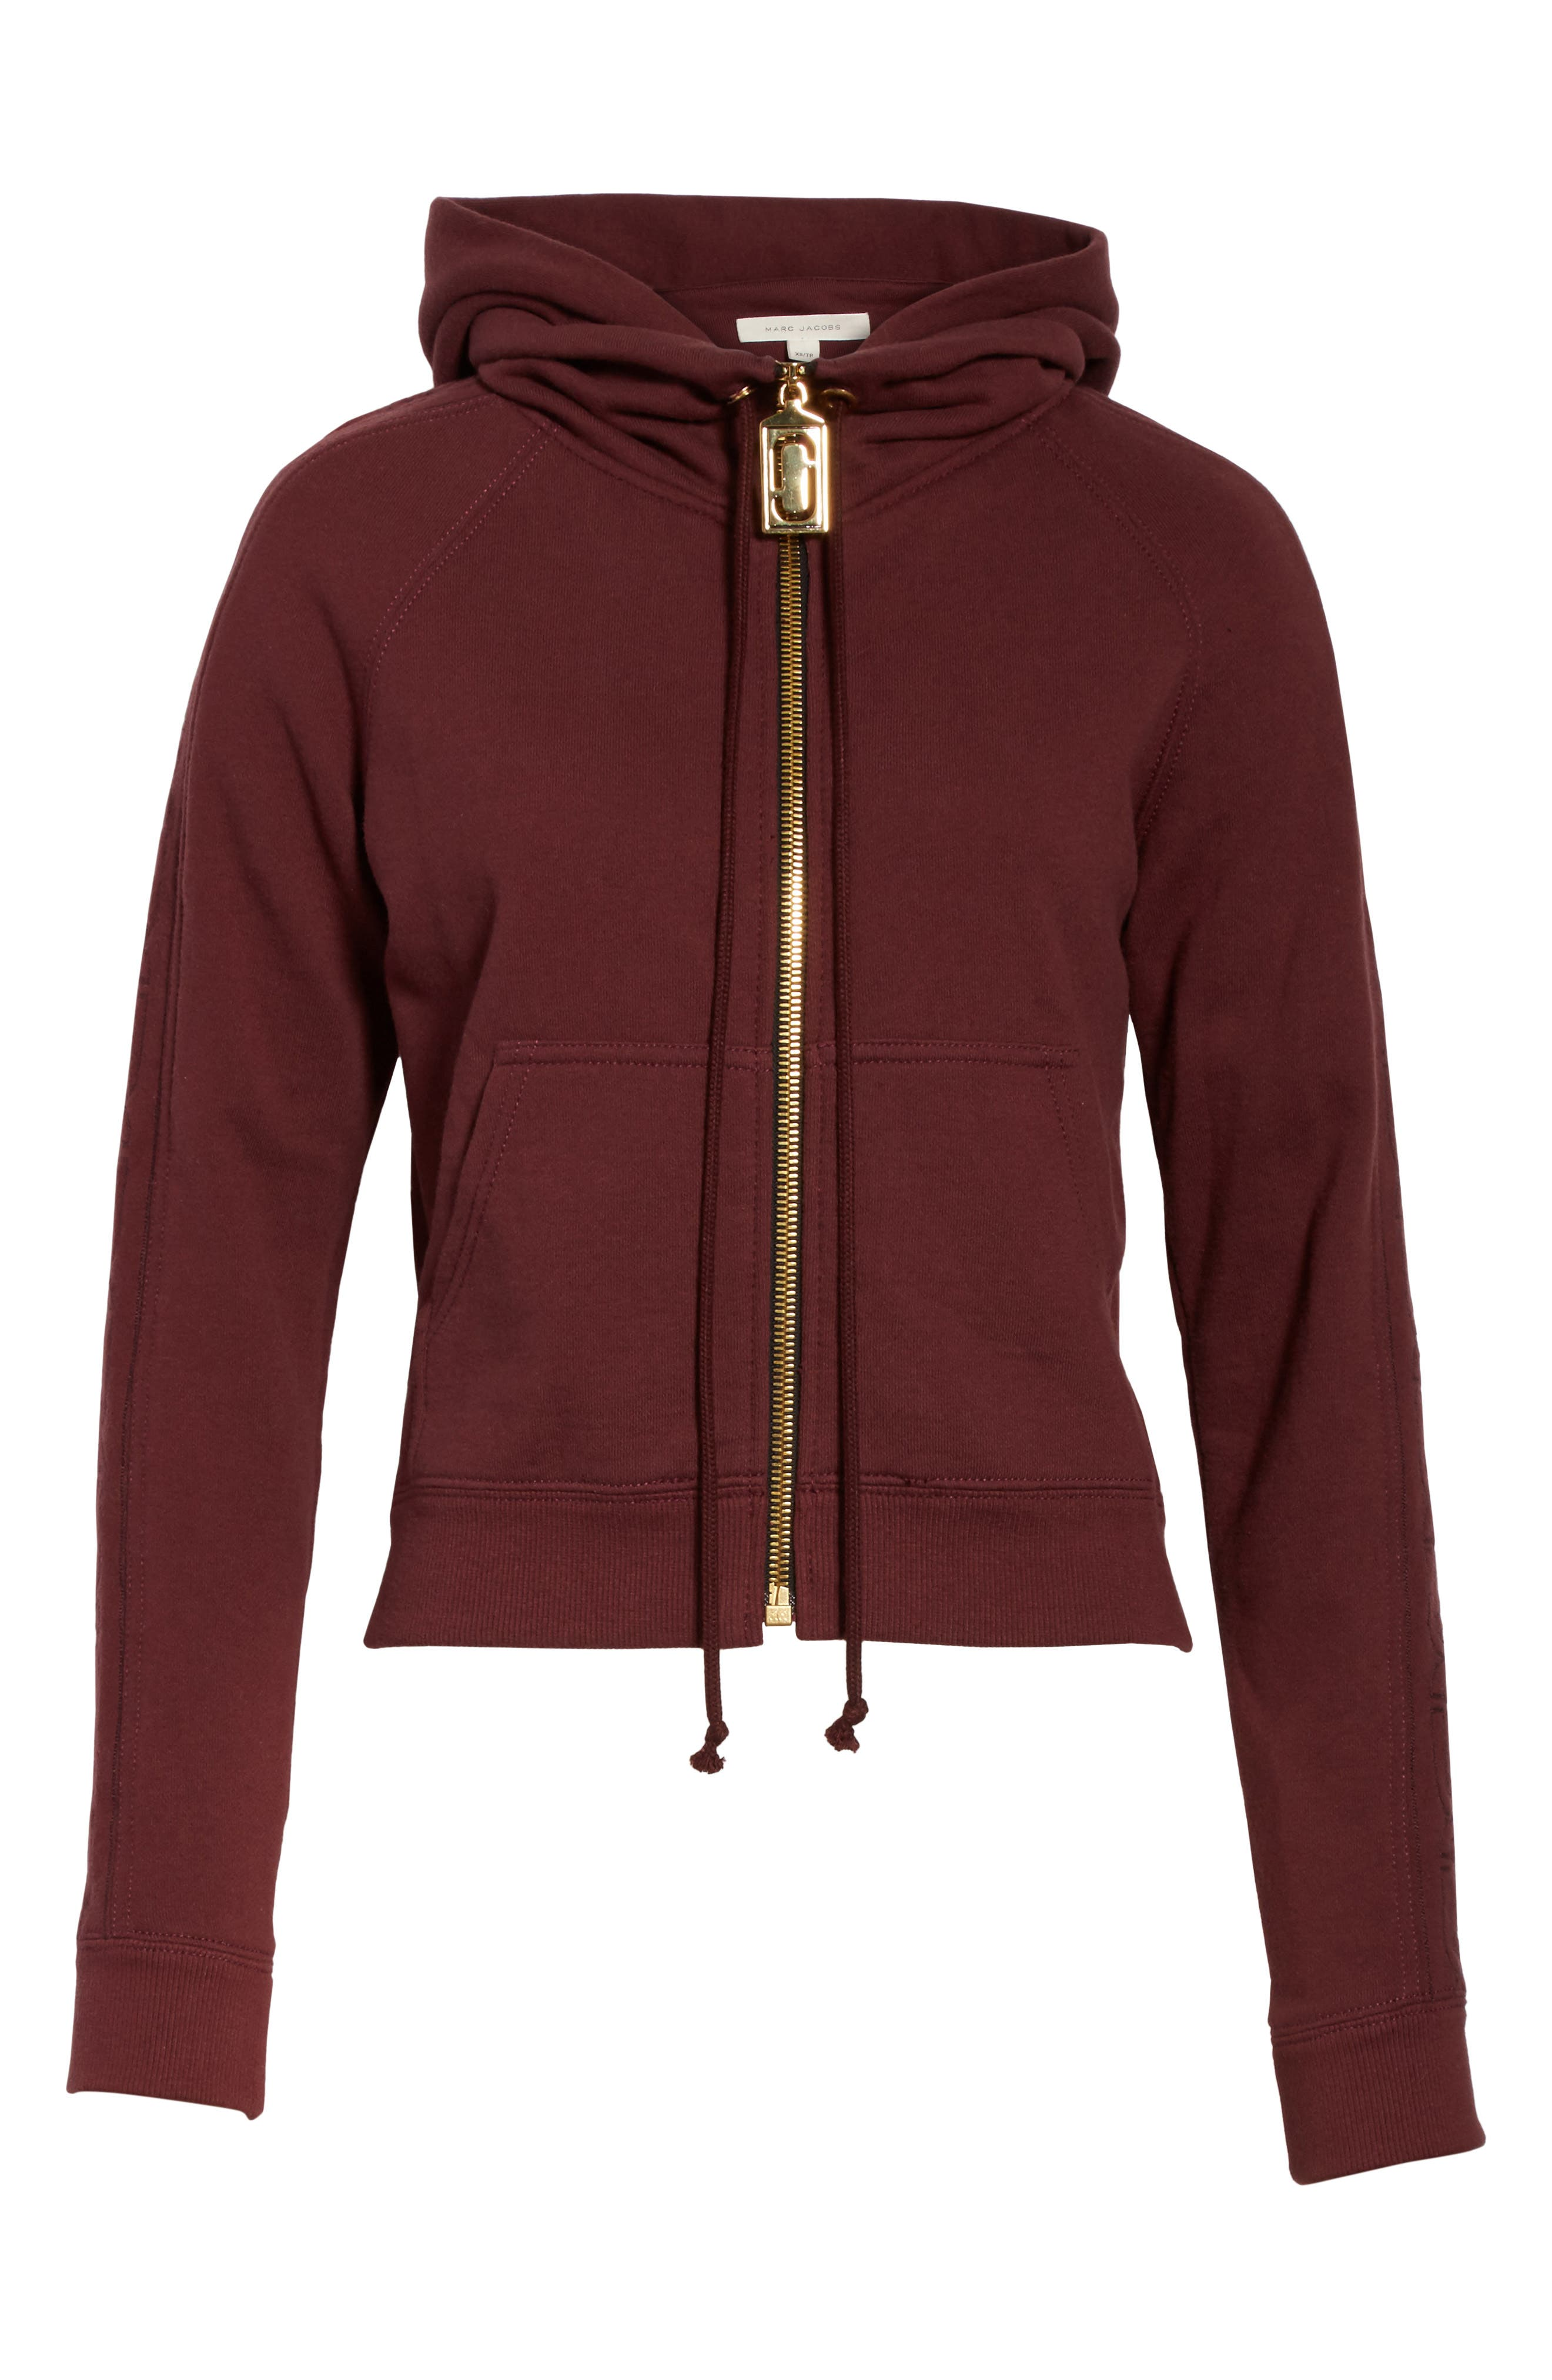 Embroidered Sleeve Hoodie,                             Alternate thumbnail 6, color,                             Burgundy